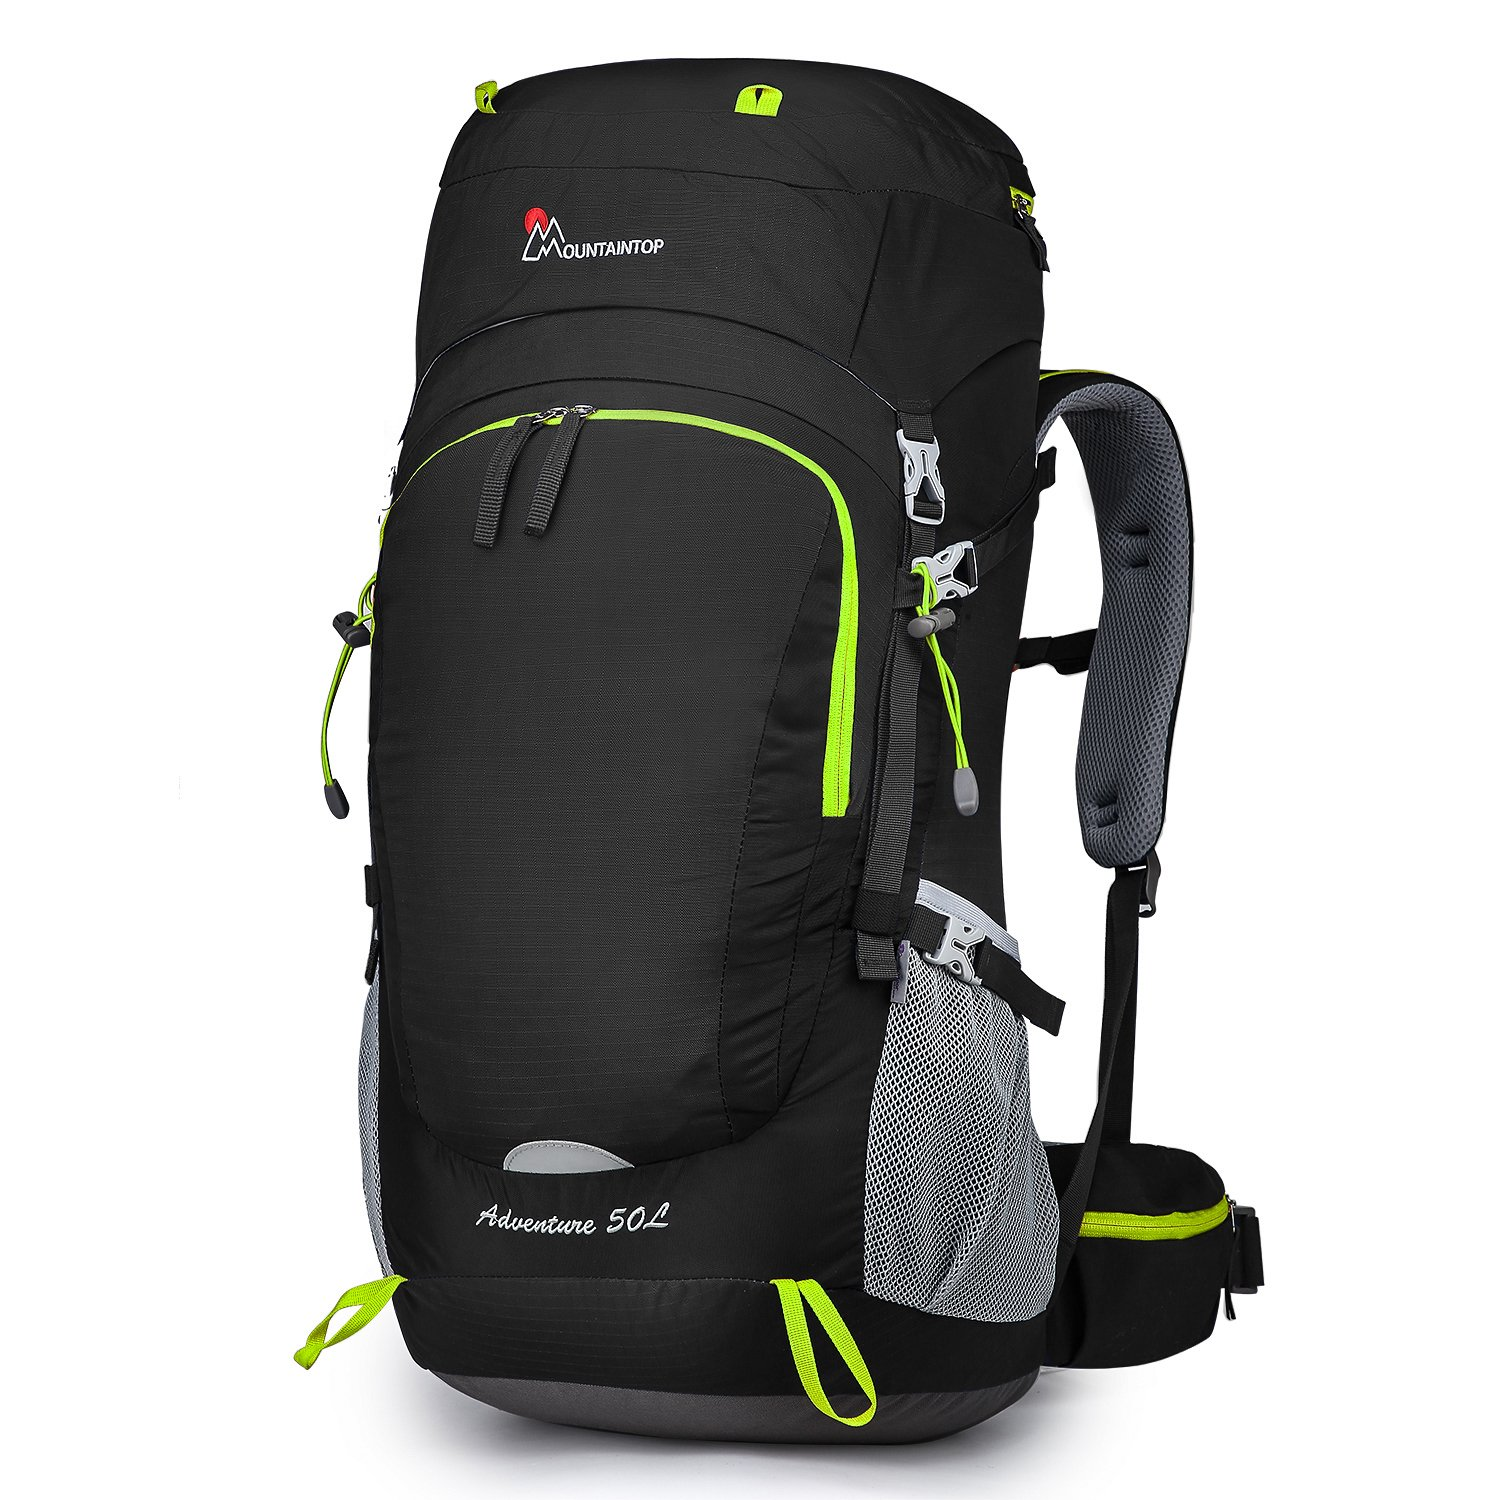 MOUNTAINTOP 50L/70L/80L Internal Frame Hiking Backpack